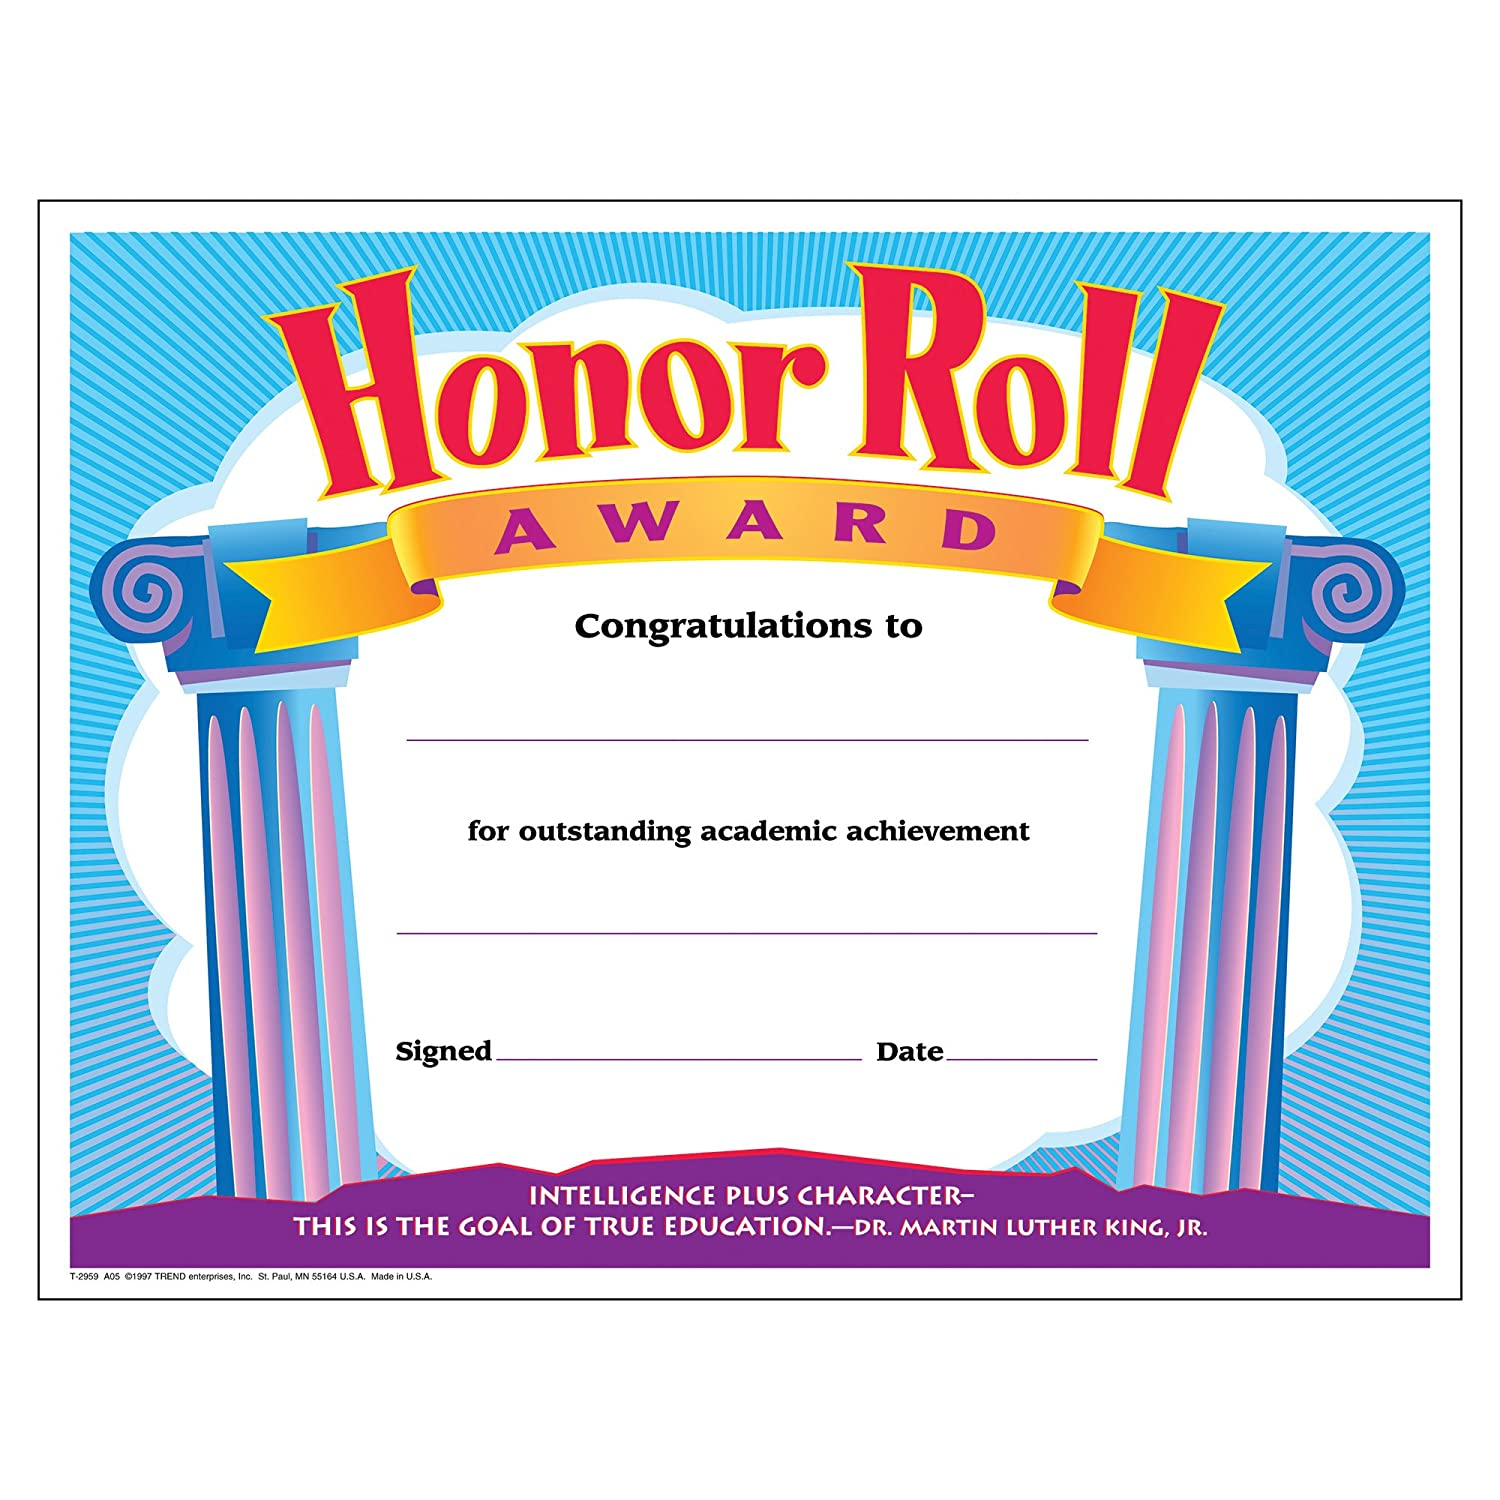 TREND enterprises, Inc. Honor Roll Award Colorful Classics Certificates, 30 ct T-2959